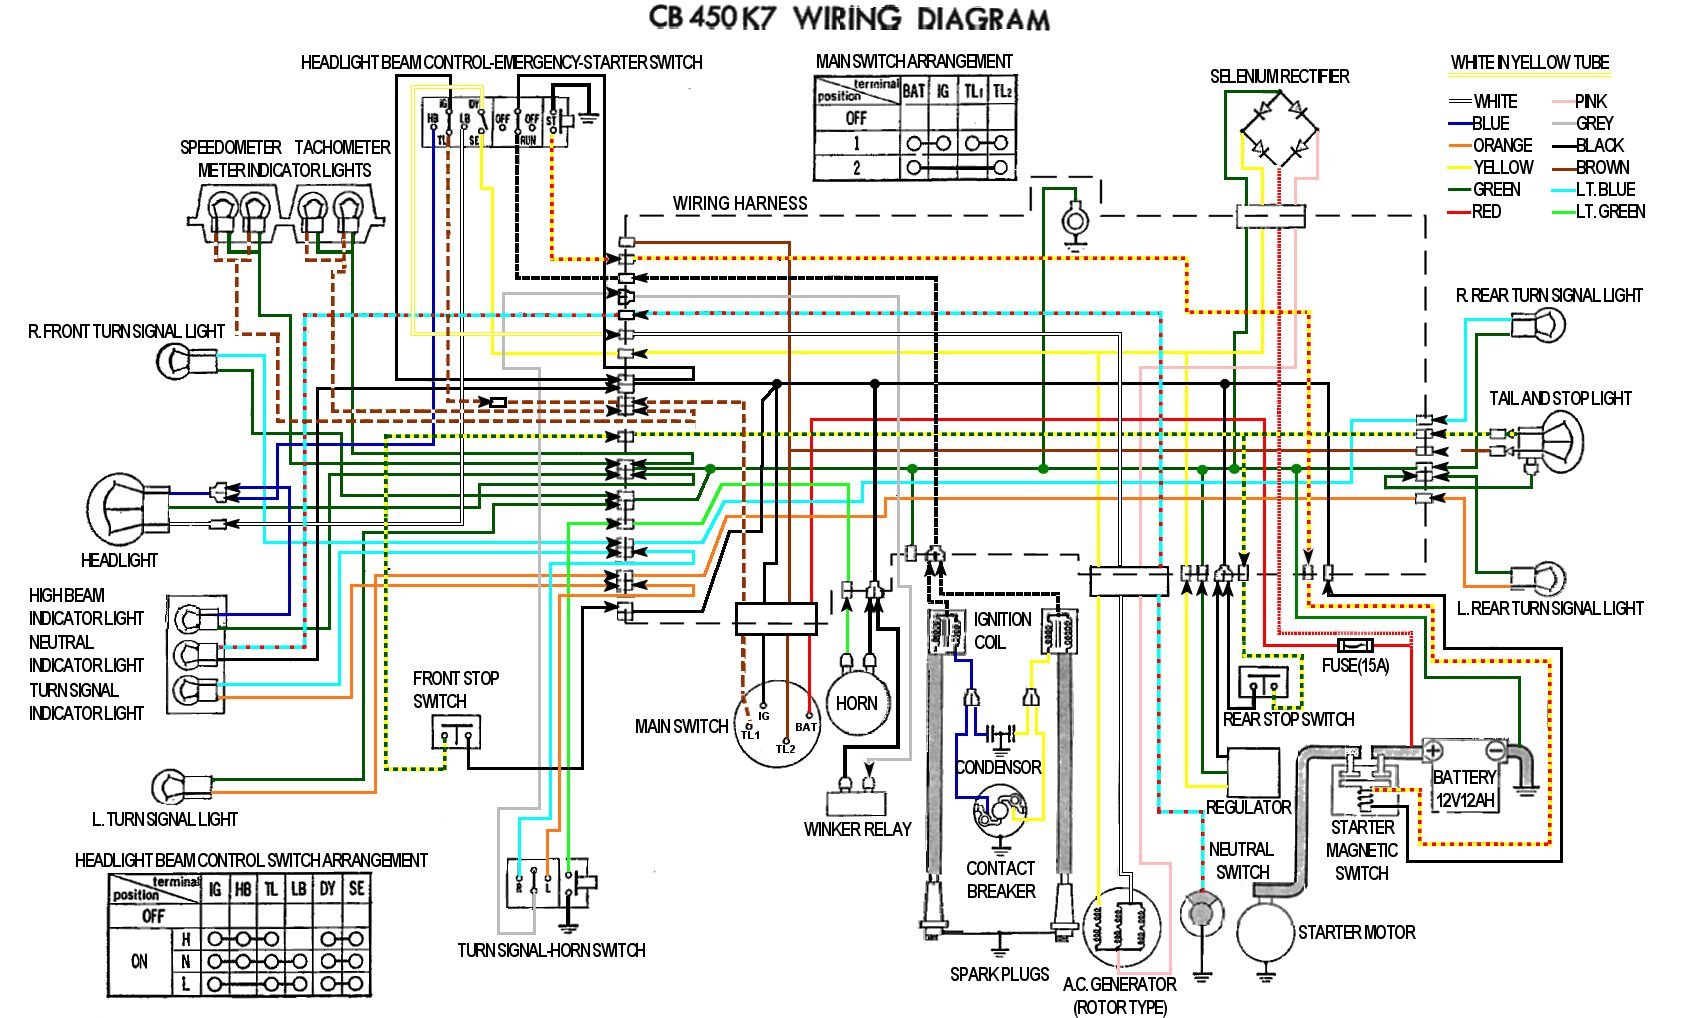 Honda Vtx 1800 Wiring Diagram Expert Category Circuit Schematic Cb450 Color Now Corrected 2006 2002